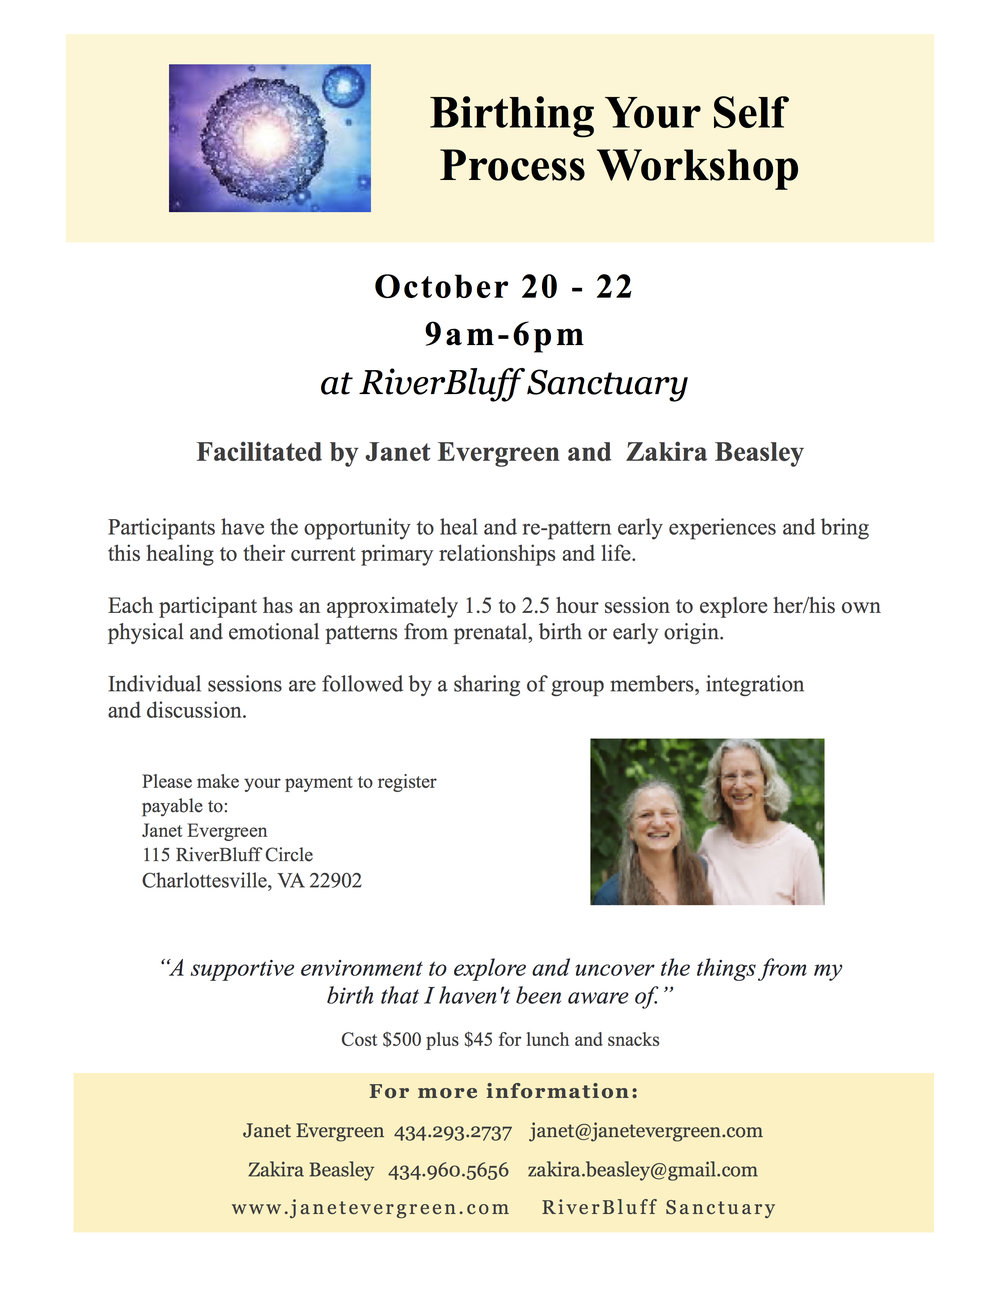 Birthing_yourself_process_workshop_janet_evergreen_zakira_beasley_charlottesville_virginia